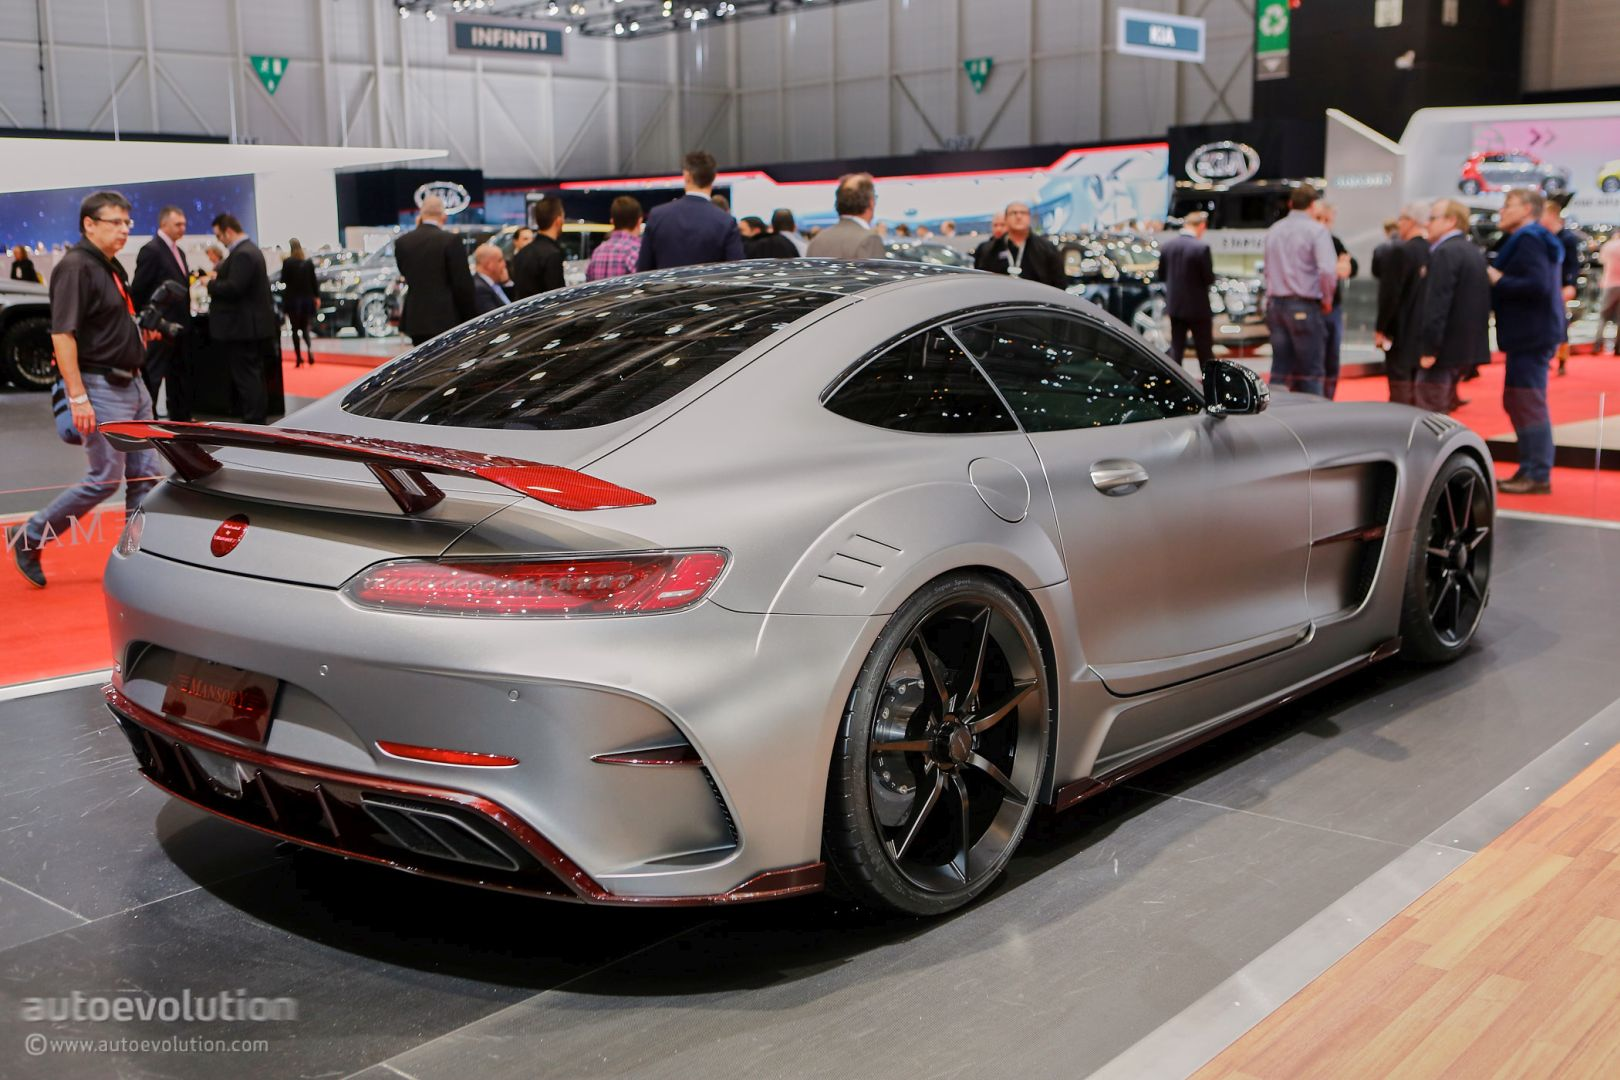 Mansory's Mercedes-AMG Geneva Booth Sees GLE63 Coupe ...